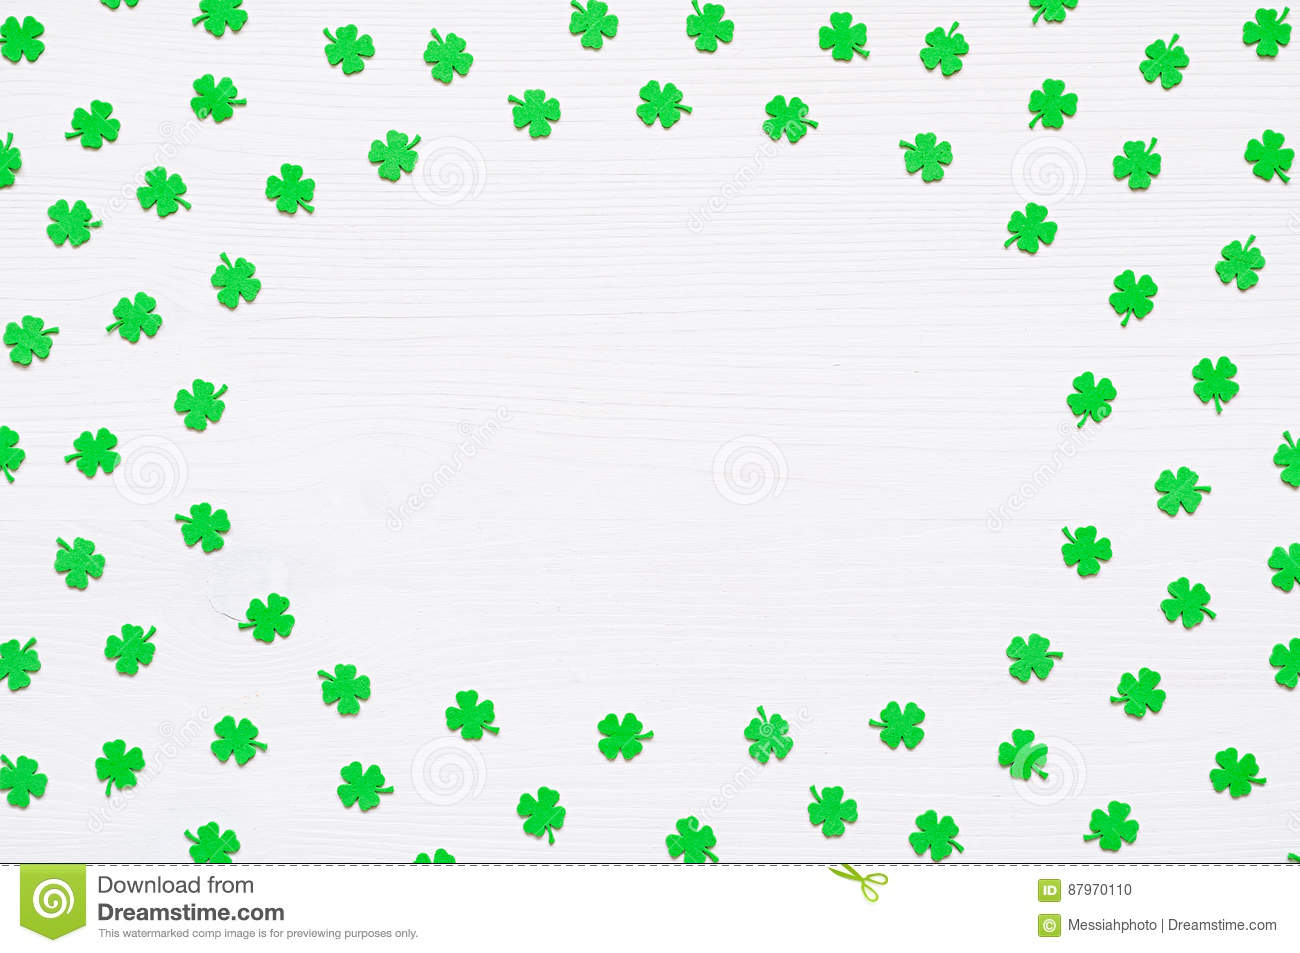 St Patrick`s Day background with green quatrefoils on white background